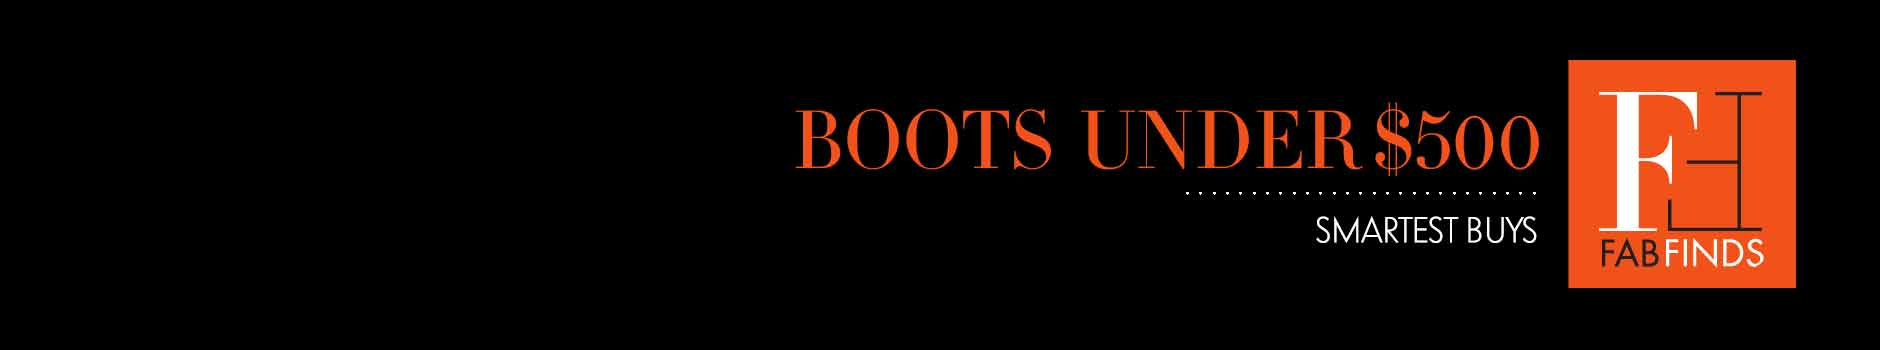 Fab Finds: Boots Under $500